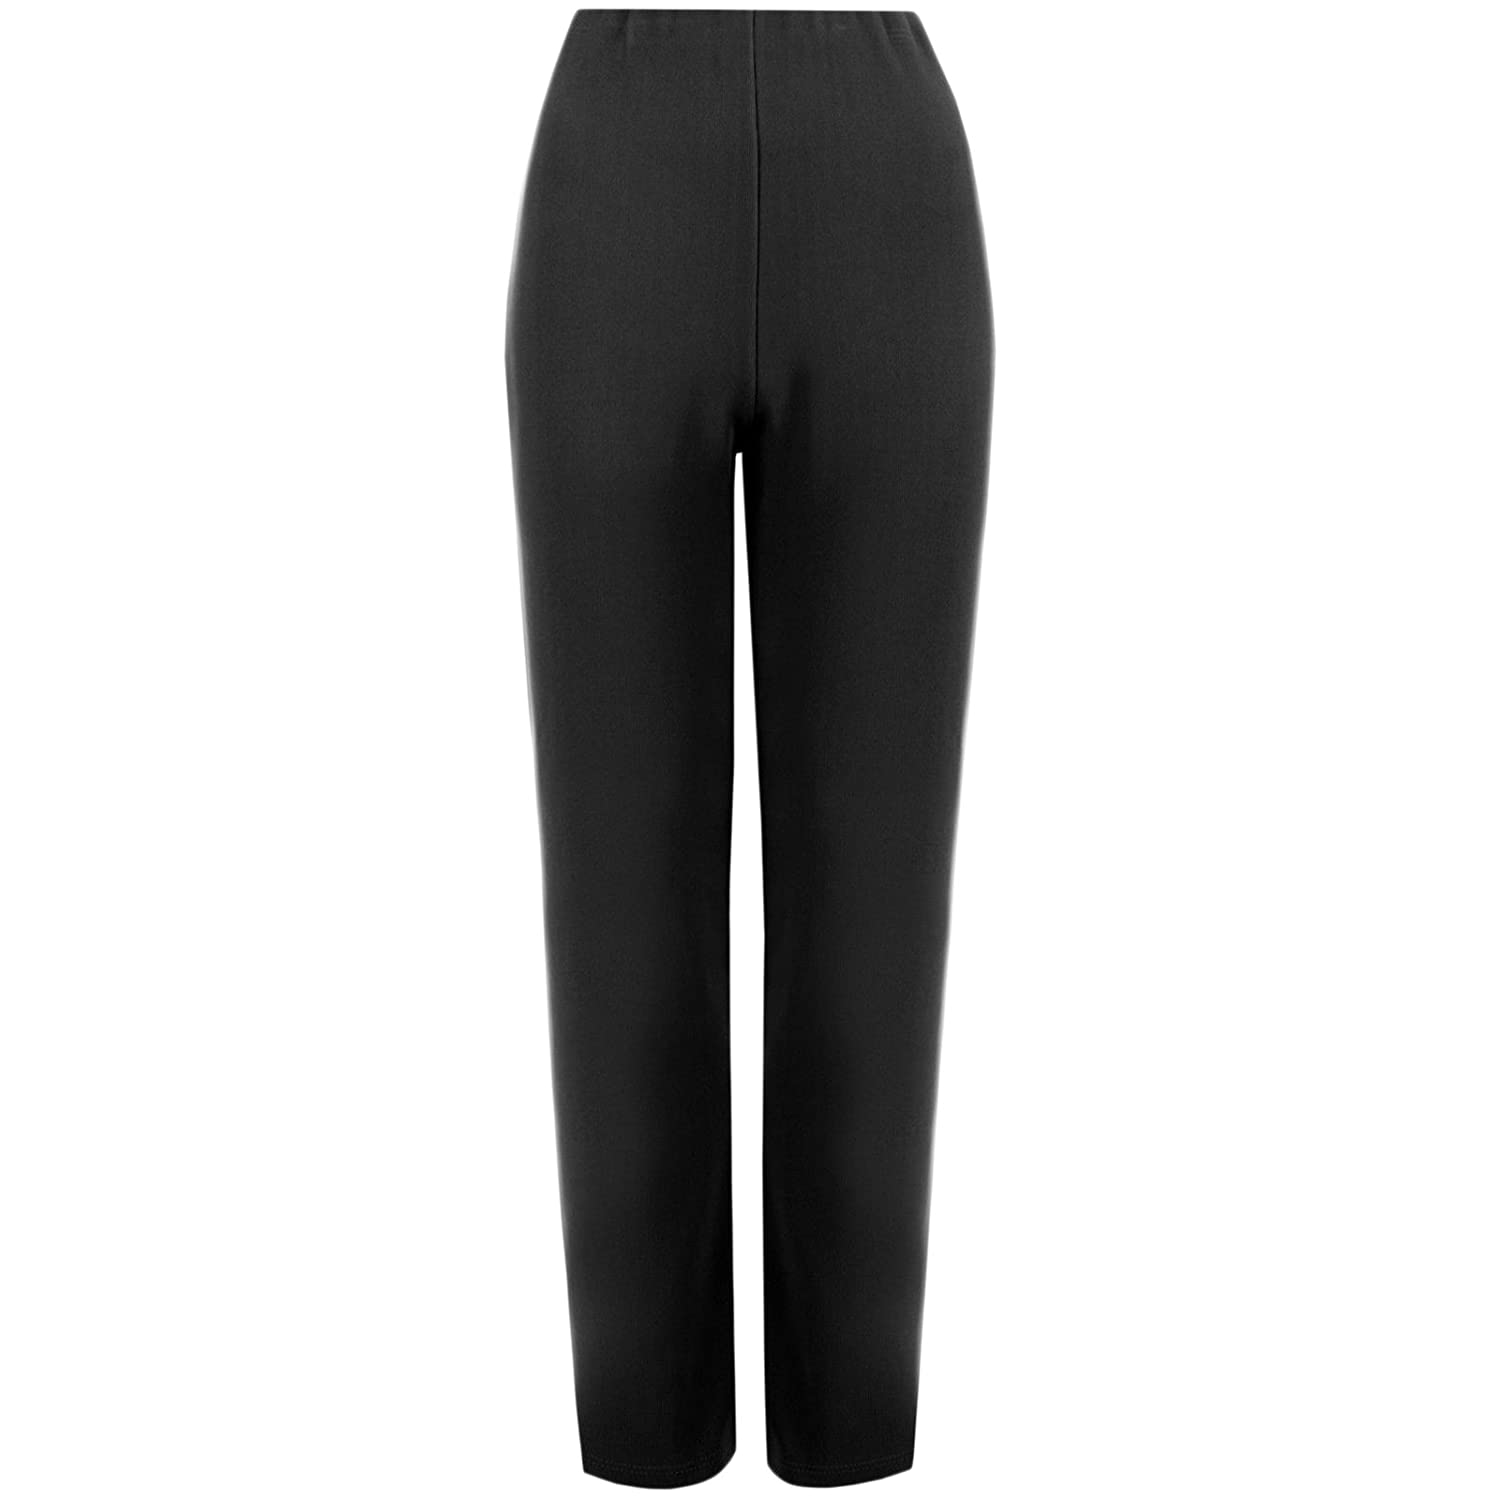 5dc5ccc4706 MyShoeStore Pack of 2 Ladies Womens Straight Leg Trousers Finely Soft  Ribbed Stretch Pull on Pants